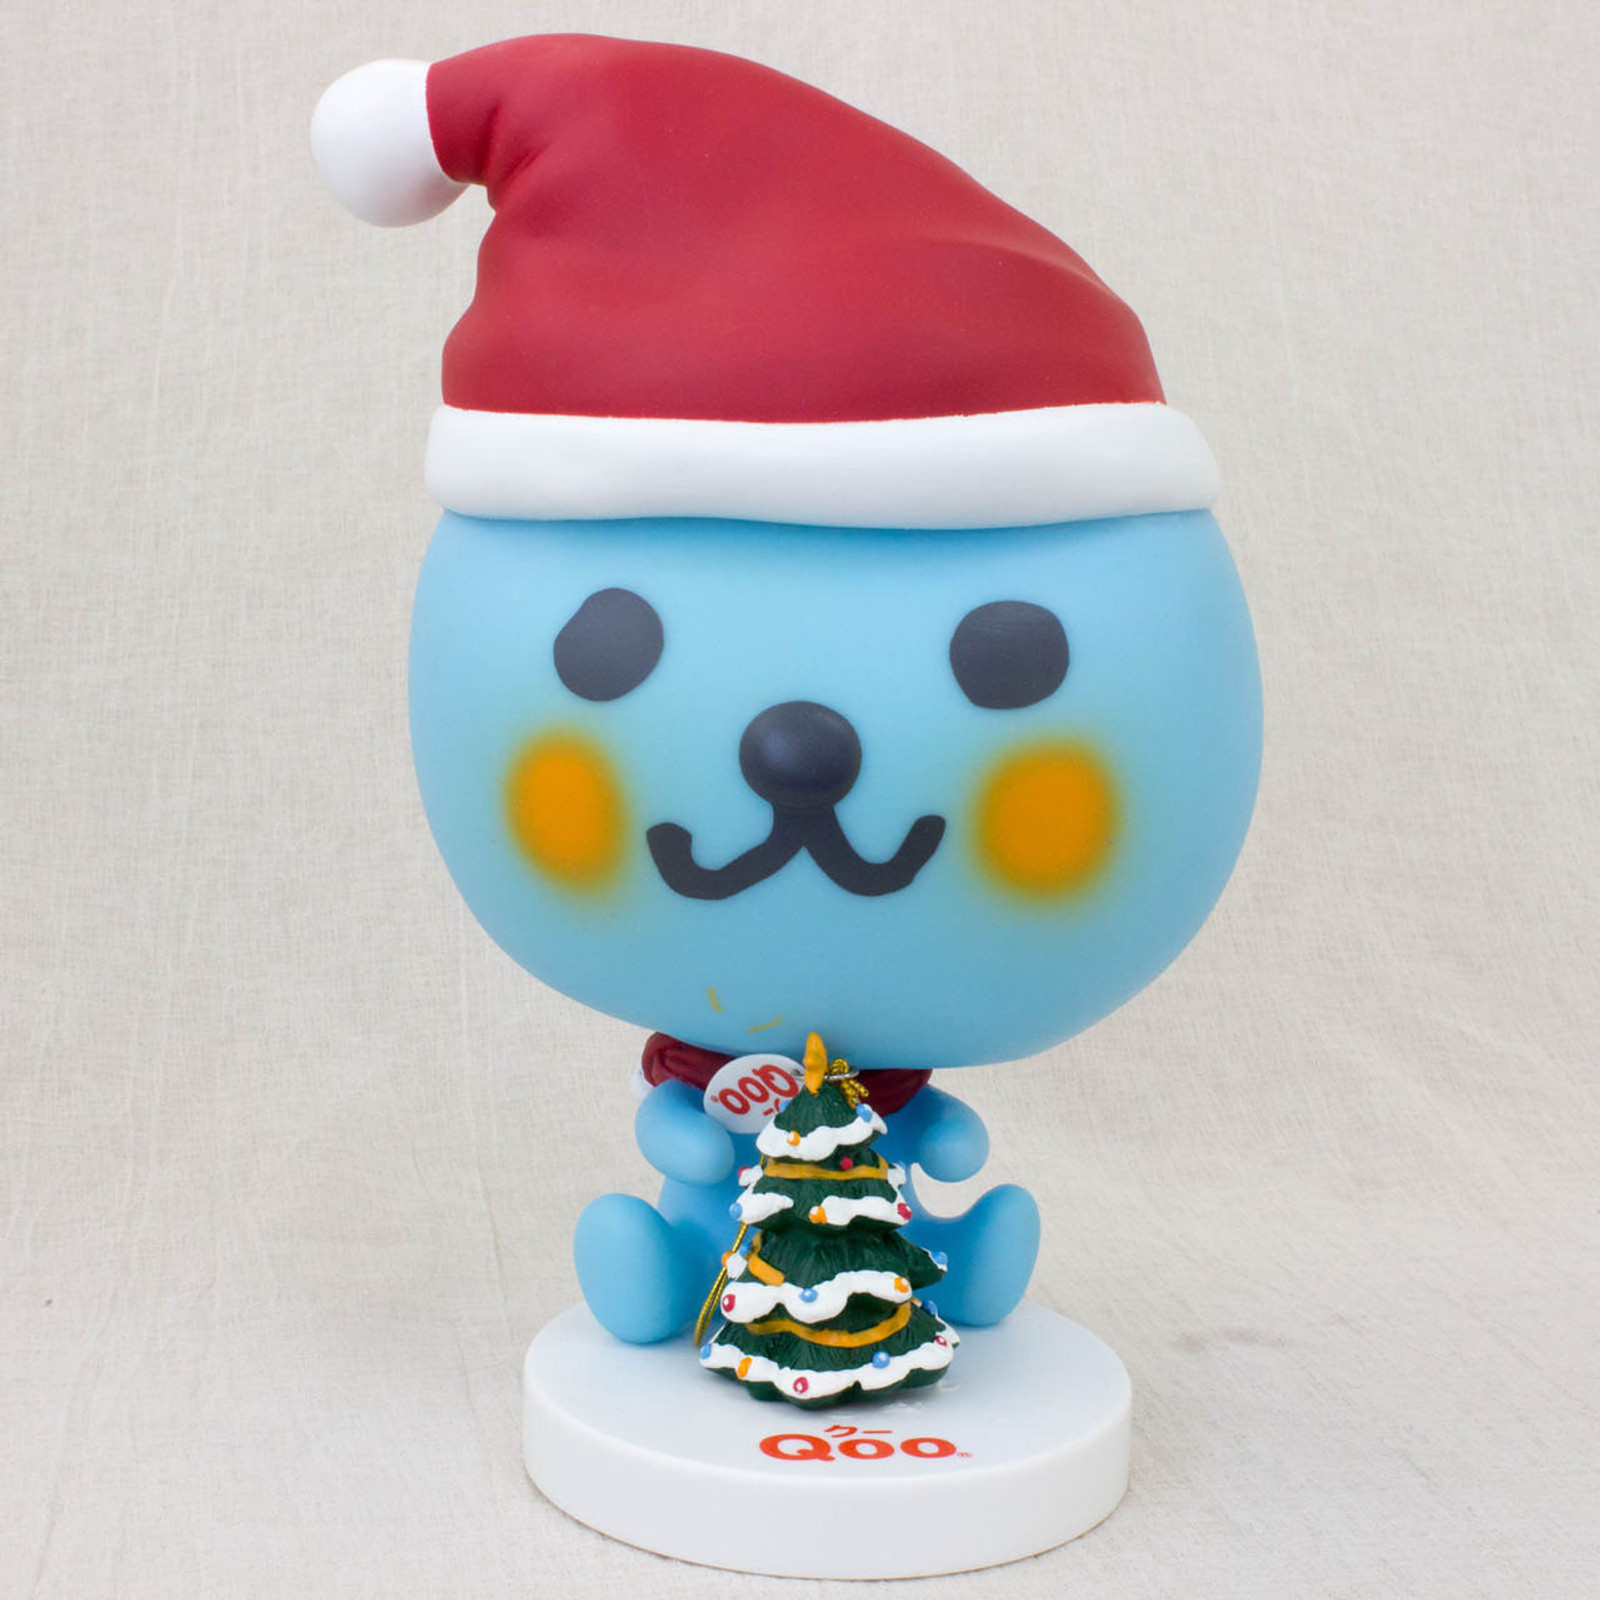 QOO Santa with Christmas Tree Figure Coca-Cola Yamazaki Japan Limited Product